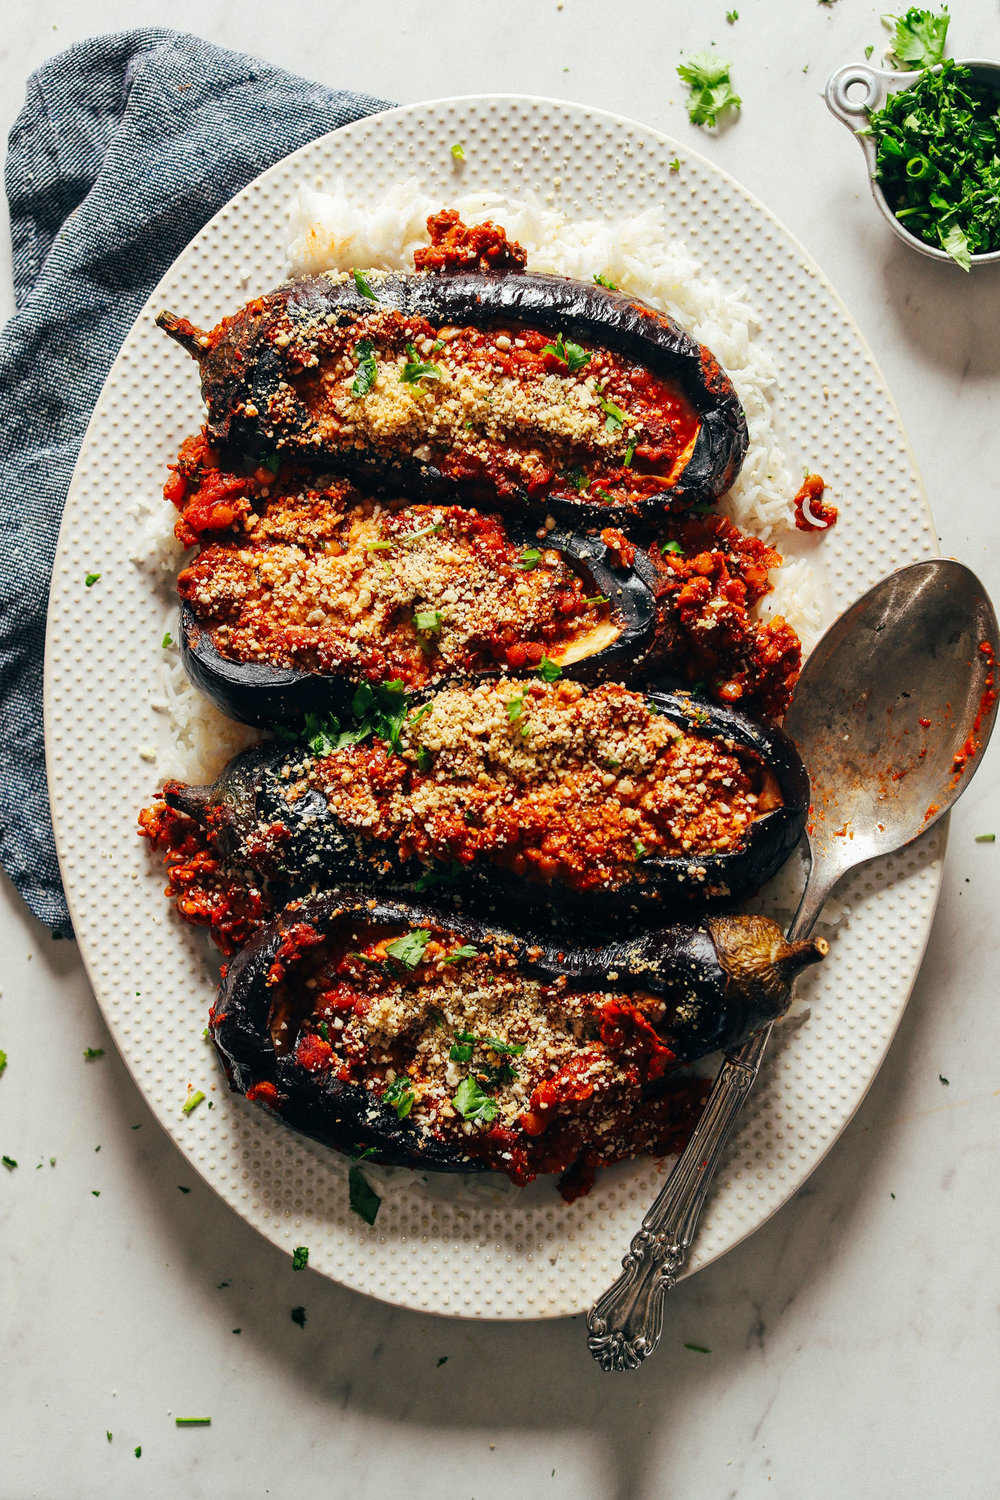 INCREDIBLE-Moroccan-Lentil-Stuffed-Eggplant-9-ingredients-BIG-flavor-so-delicious-vegan-plantbased-eggplant-lentils-recipe-glutenfree-minimalistbaker-22.jpg